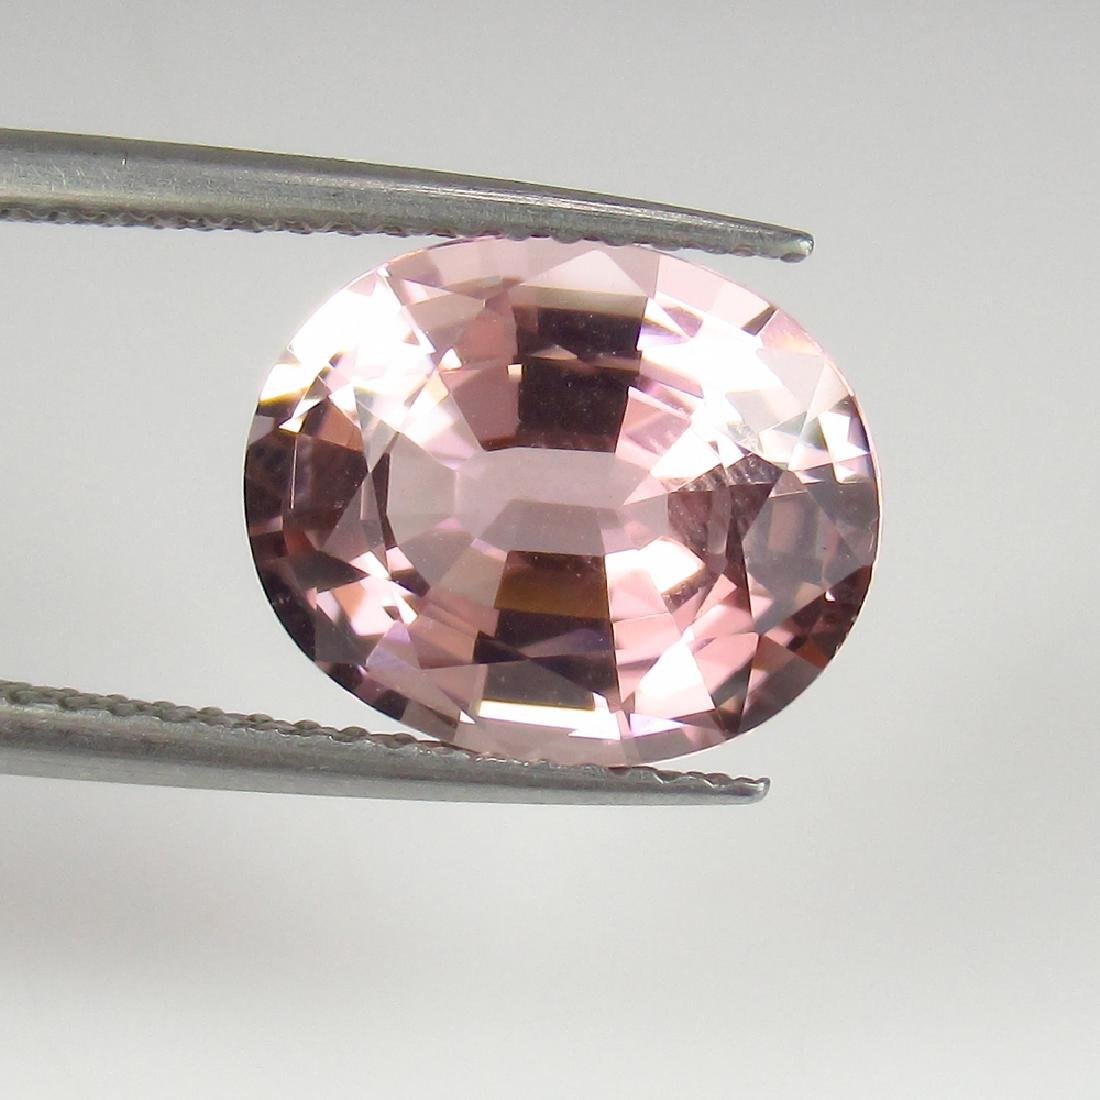 3.82 Ct High Class Sweet Pink Tourmaline Full Luster